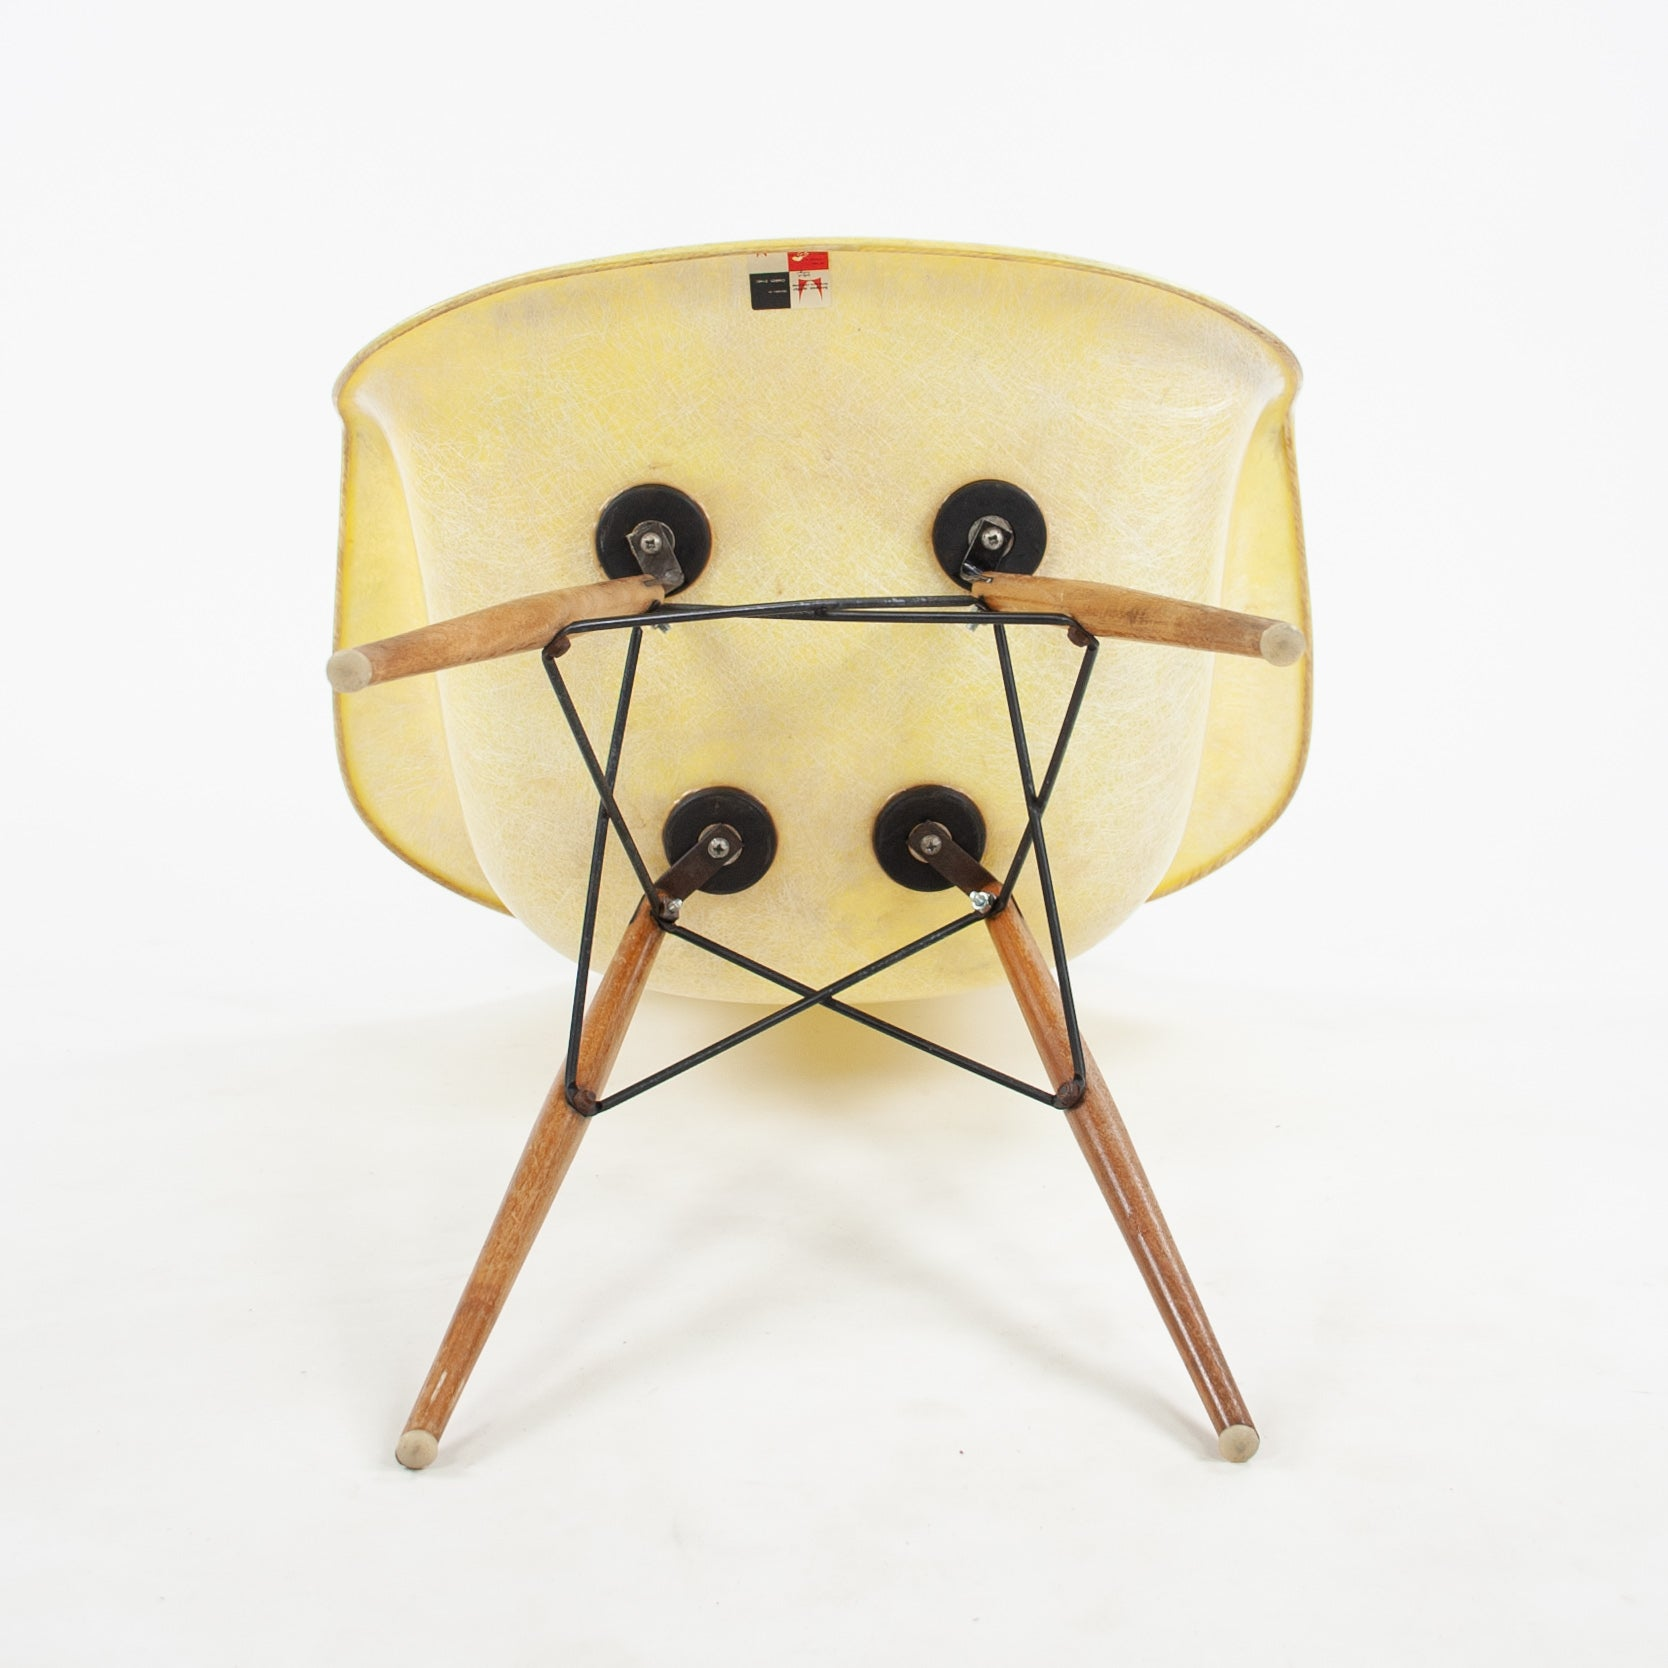 SOLD 1951 Eames Herman Miller DAW Armshell Fiberglass Chair Rope Edge Zenith Yellow